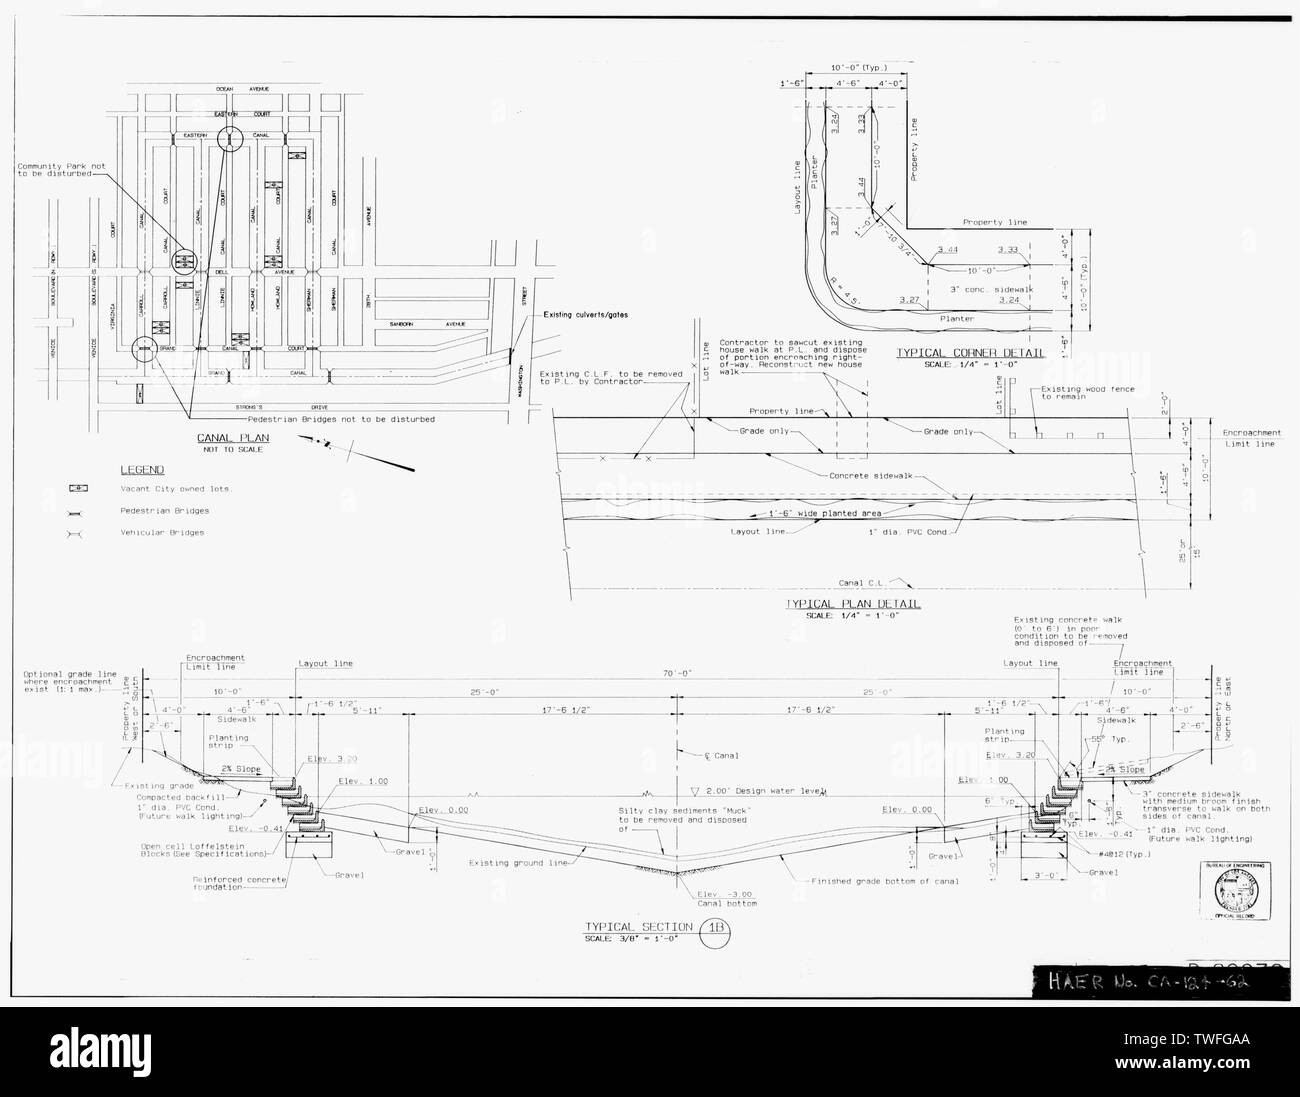 PLANS FOR PROPOSED LOFFELSTEIN BLOCK CONFIGURATION Plan Sheet D-29976, Venice Canals Rehabilitation, Sheet 3 of 26 (delineated by Manuel Bartolome, November 1990) - Venice Canals, Community of Venice, Los Angeles, Los Angeles County, CA - Stock Image